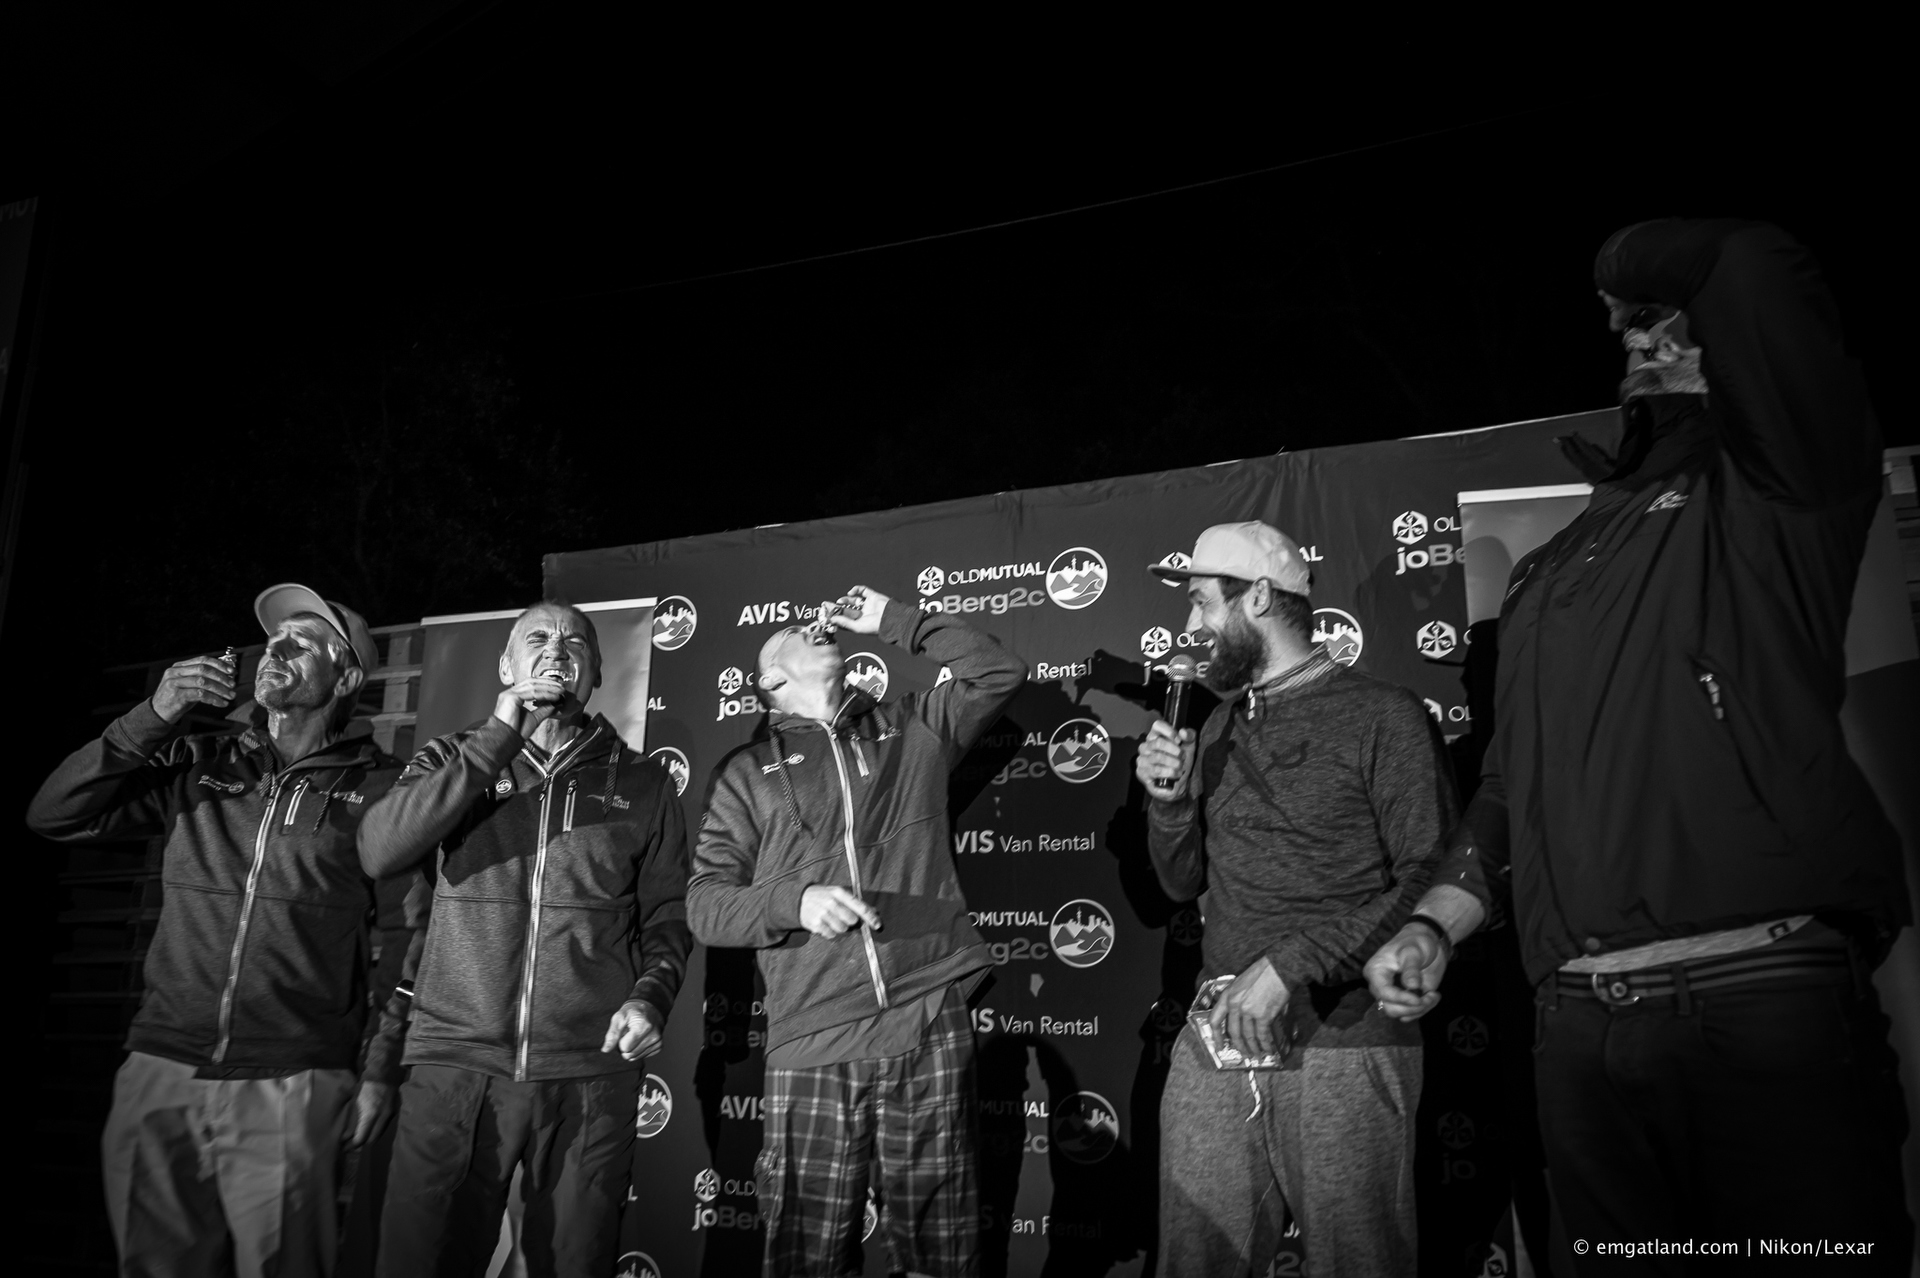 Gary Green, Glen Haw and Craig Wapnick share an underberg shooter on stage during the Joberg2c.